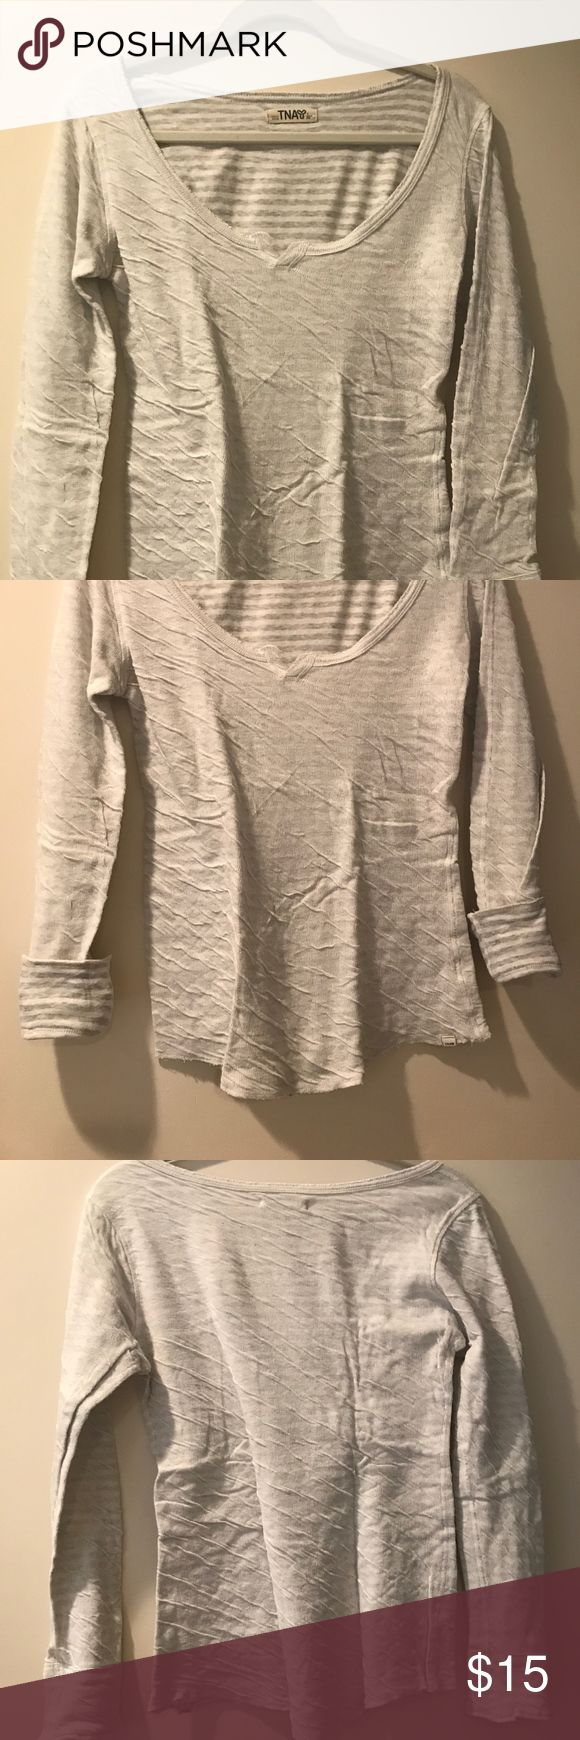 Aritzia 'TNA' Long Sleeve Reversible Top A great basic and essential piece to add to your collection, this TNA long sleeve is super comfy and cozy with its cotton material and stretch fit. Wear it however you like and you can even fold sleeves back for a stylish contrasting color look! Looking for layering pieces to add to your fall wardrobe or for back to school? Well, this reversible top is perfect for you! Check out the other colors we have of this top! Worn with love and still in a nice…